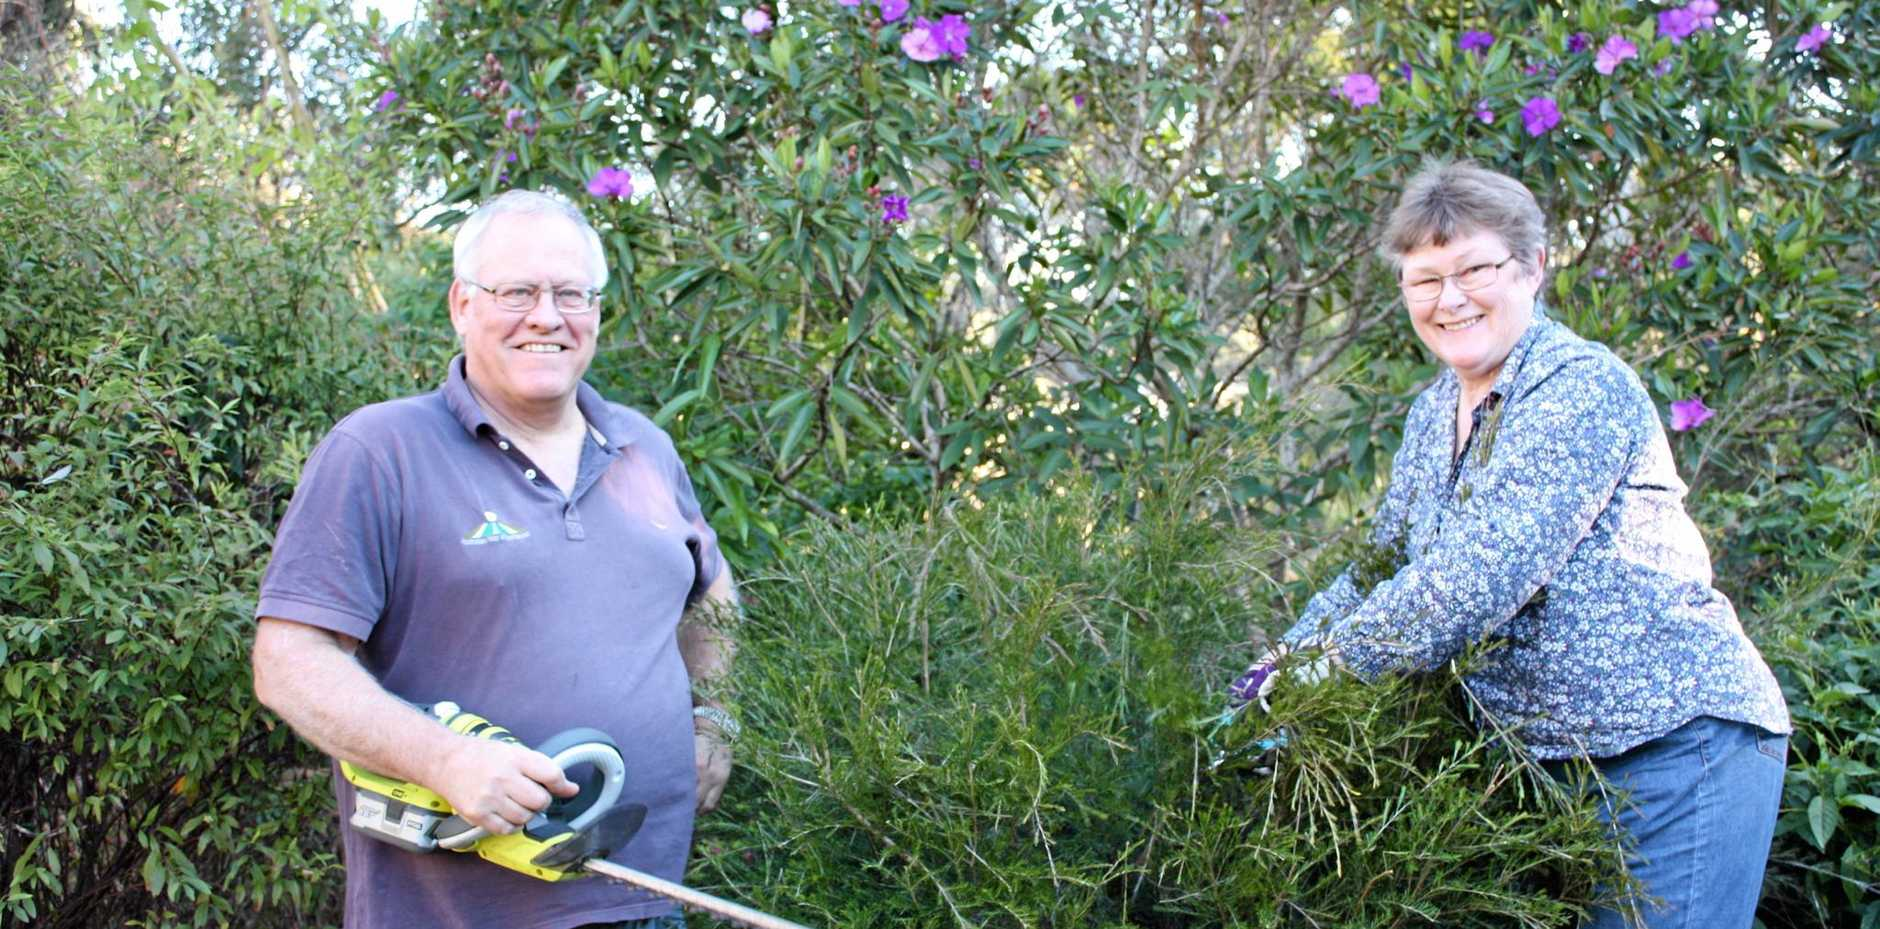 GROWING INTEREST: Geoff and Maria Bell at work in their own garden at Heritage Park.